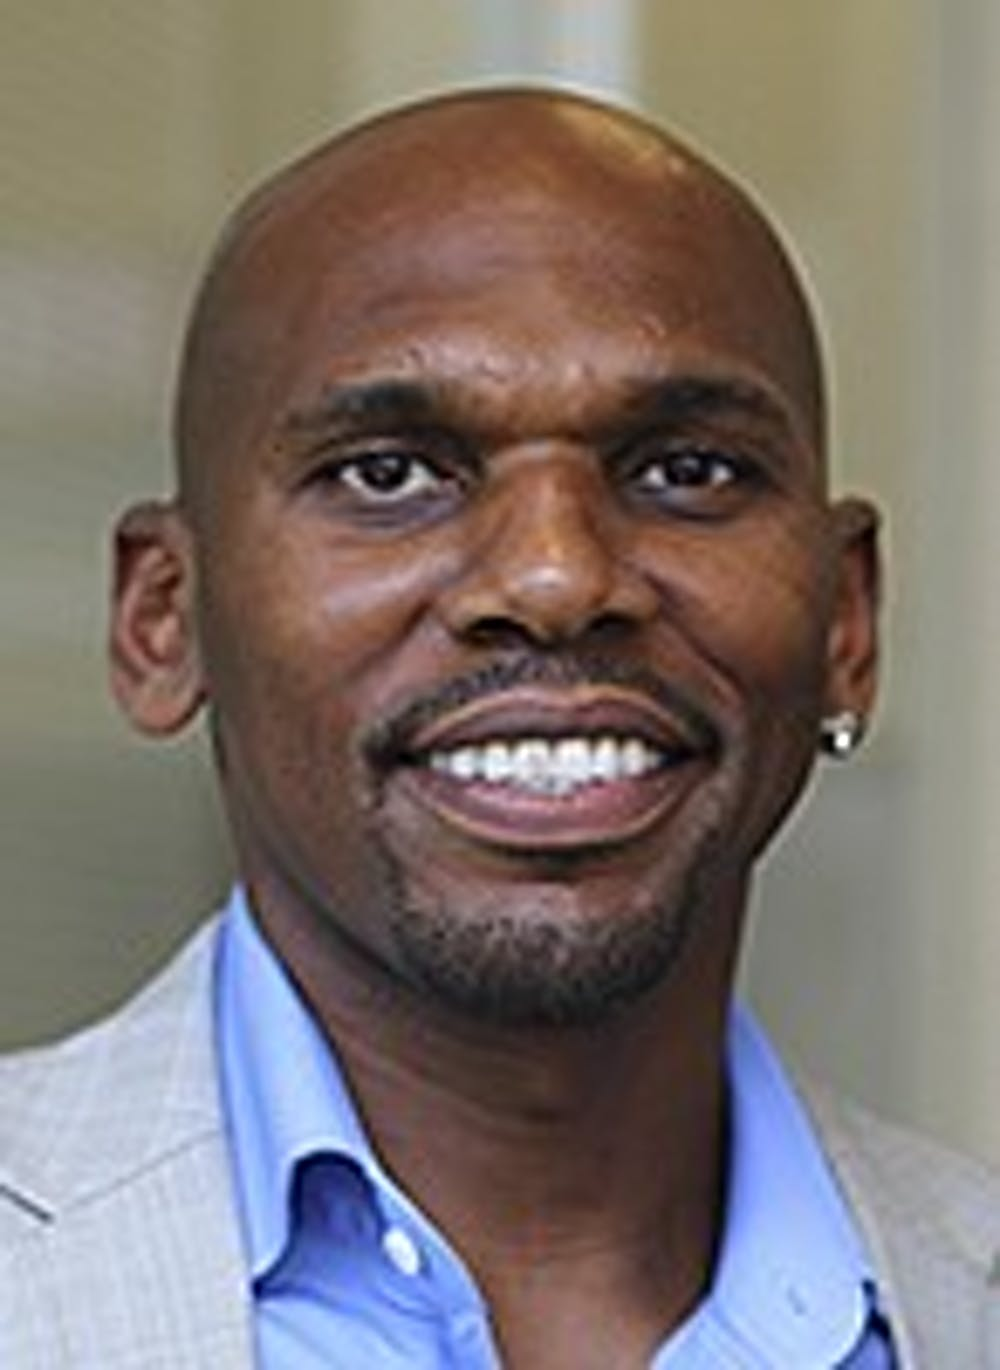 Former UNC basketball star Jerry Stackhouse named head basketball coach at Vanderbilt